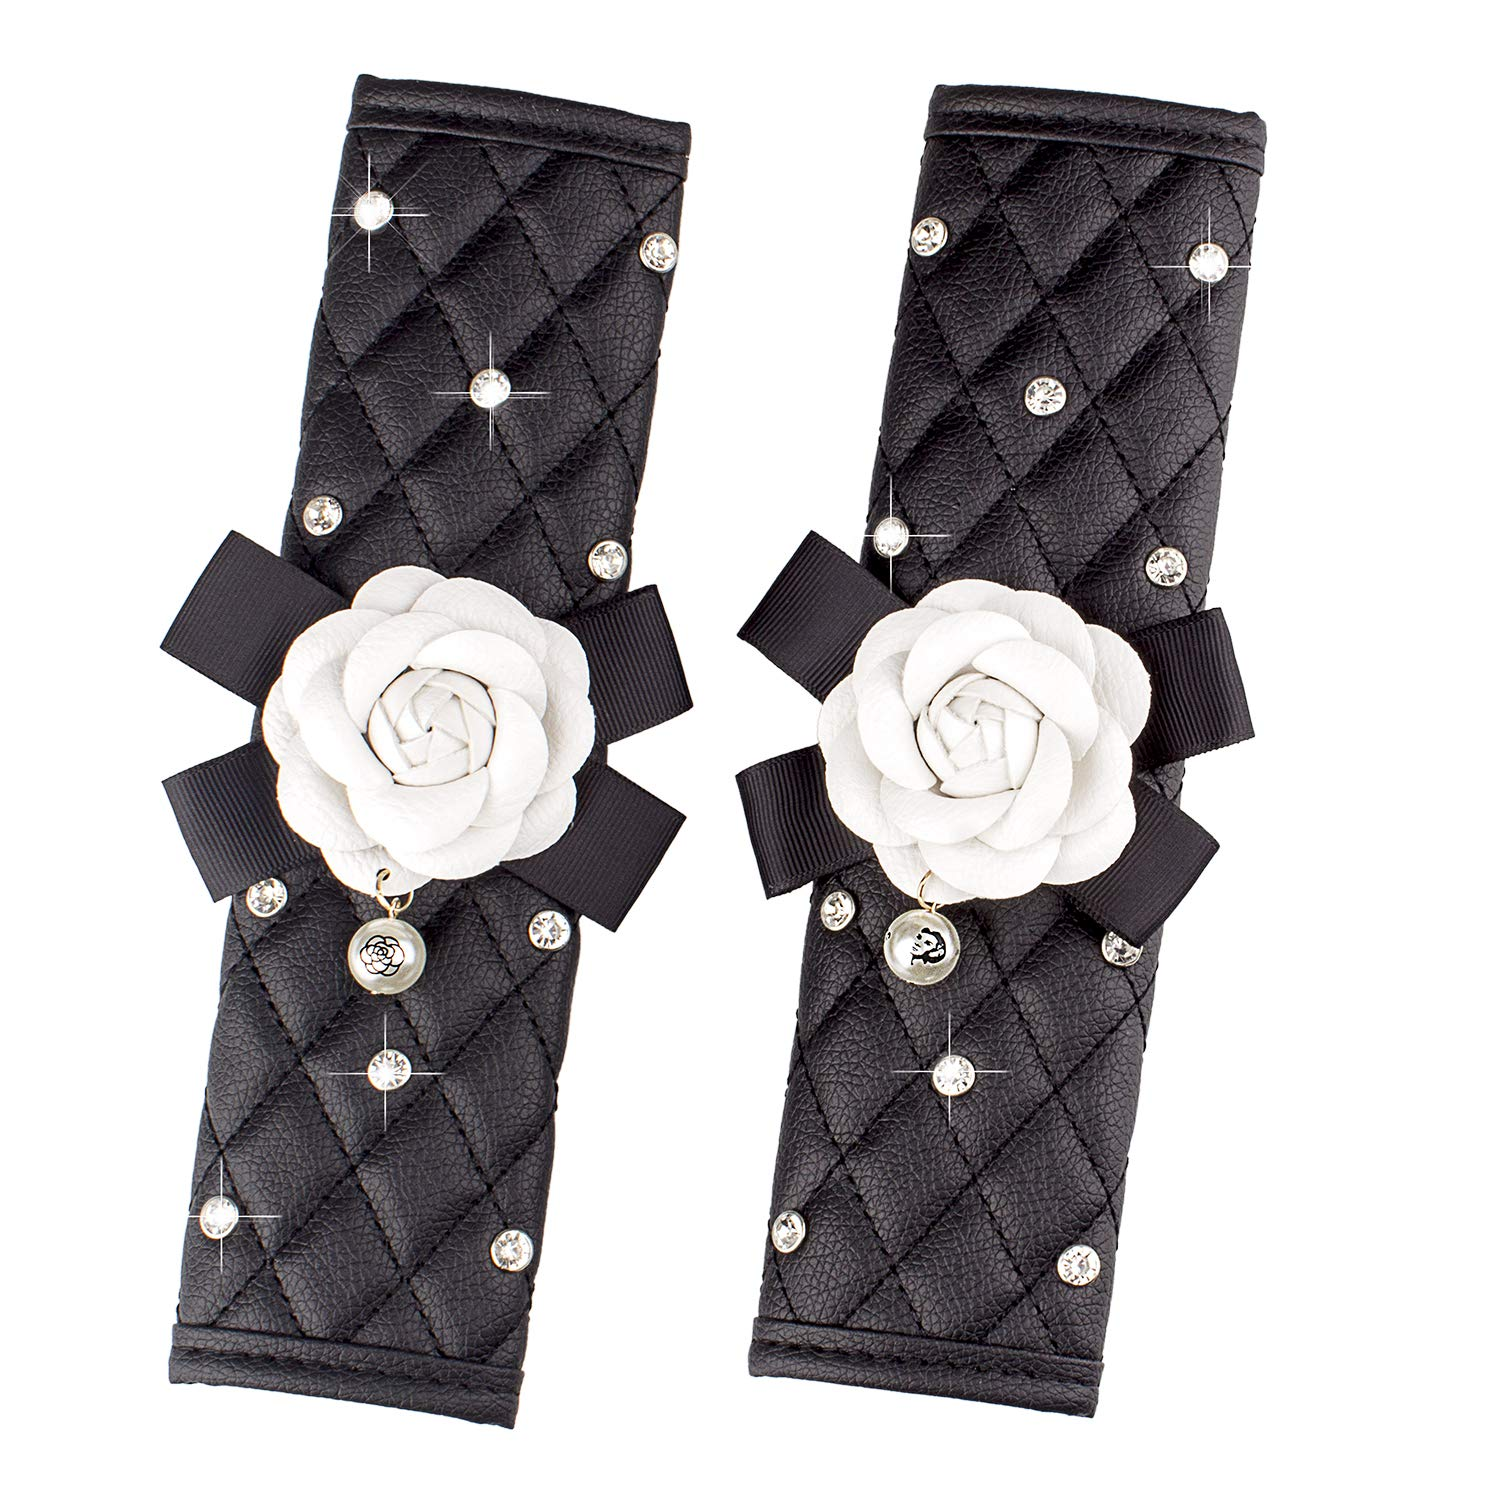 Elegant Car Series Universal For Girls Women Ladies Queen-Rose Red Flower Auto Car Seat Belt Pads Cover with Fashion Cute Flower Diamond Pearl,Exquisite Lattice Design,Soft Leather Stylish